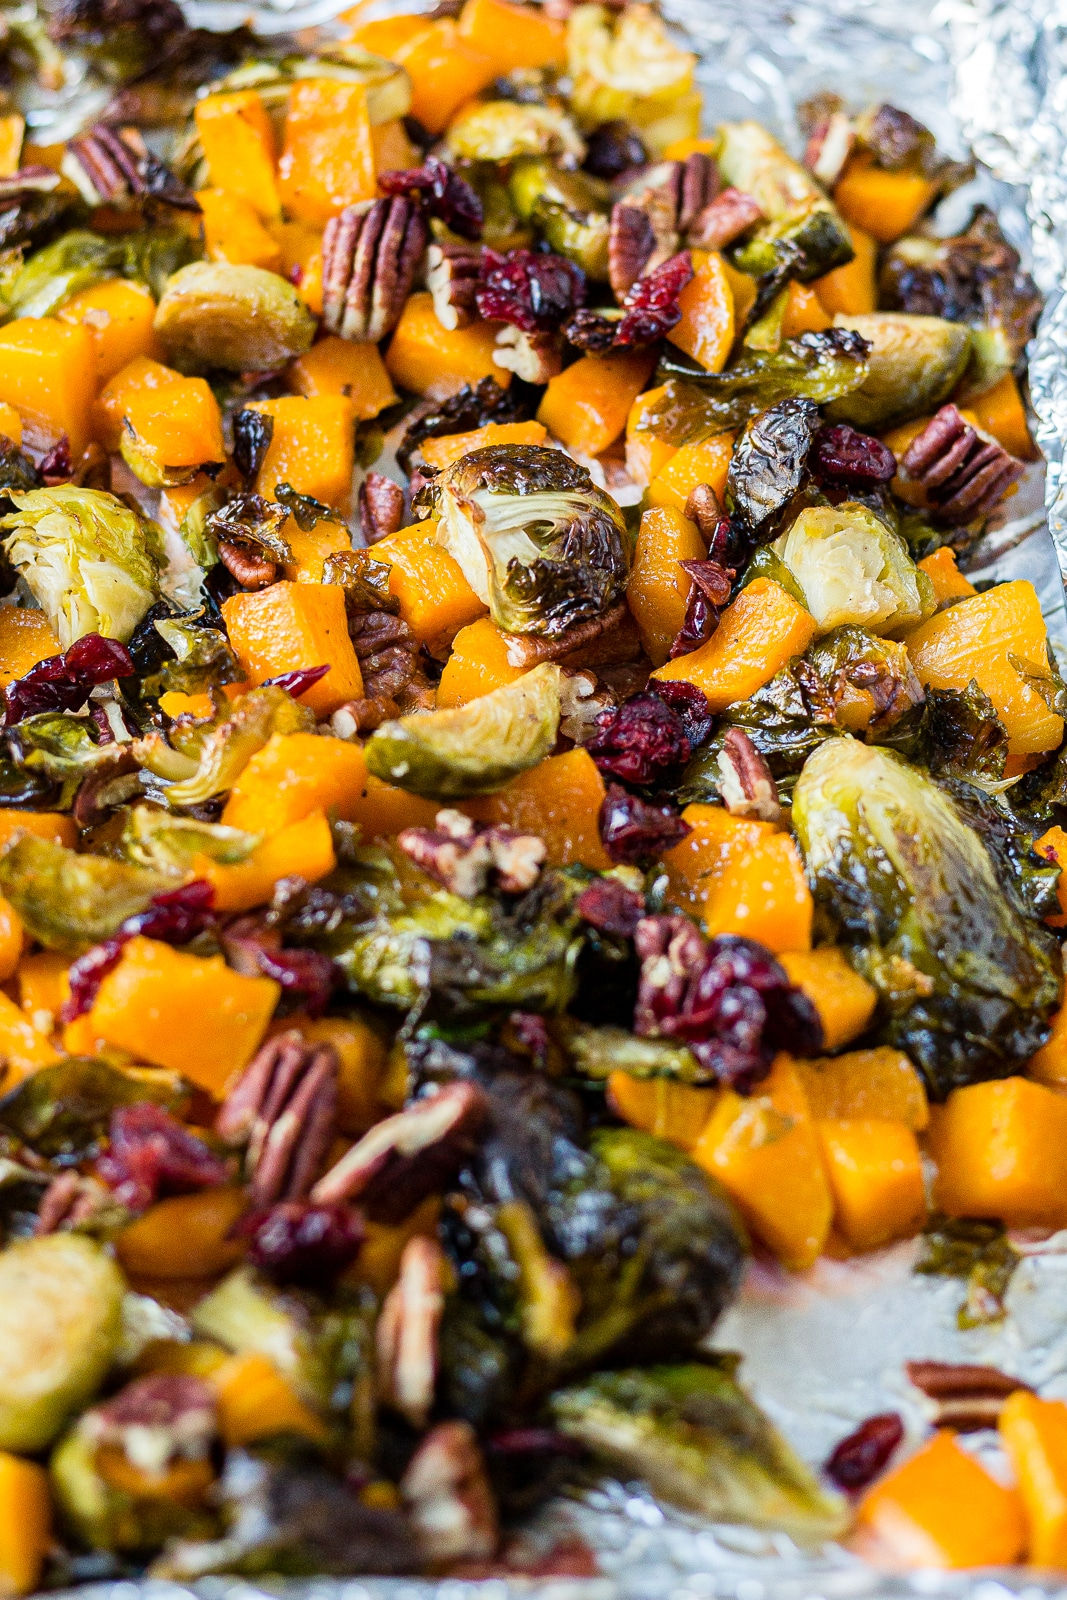 brussels sprouts and butternut squash roasted on a sheet pan